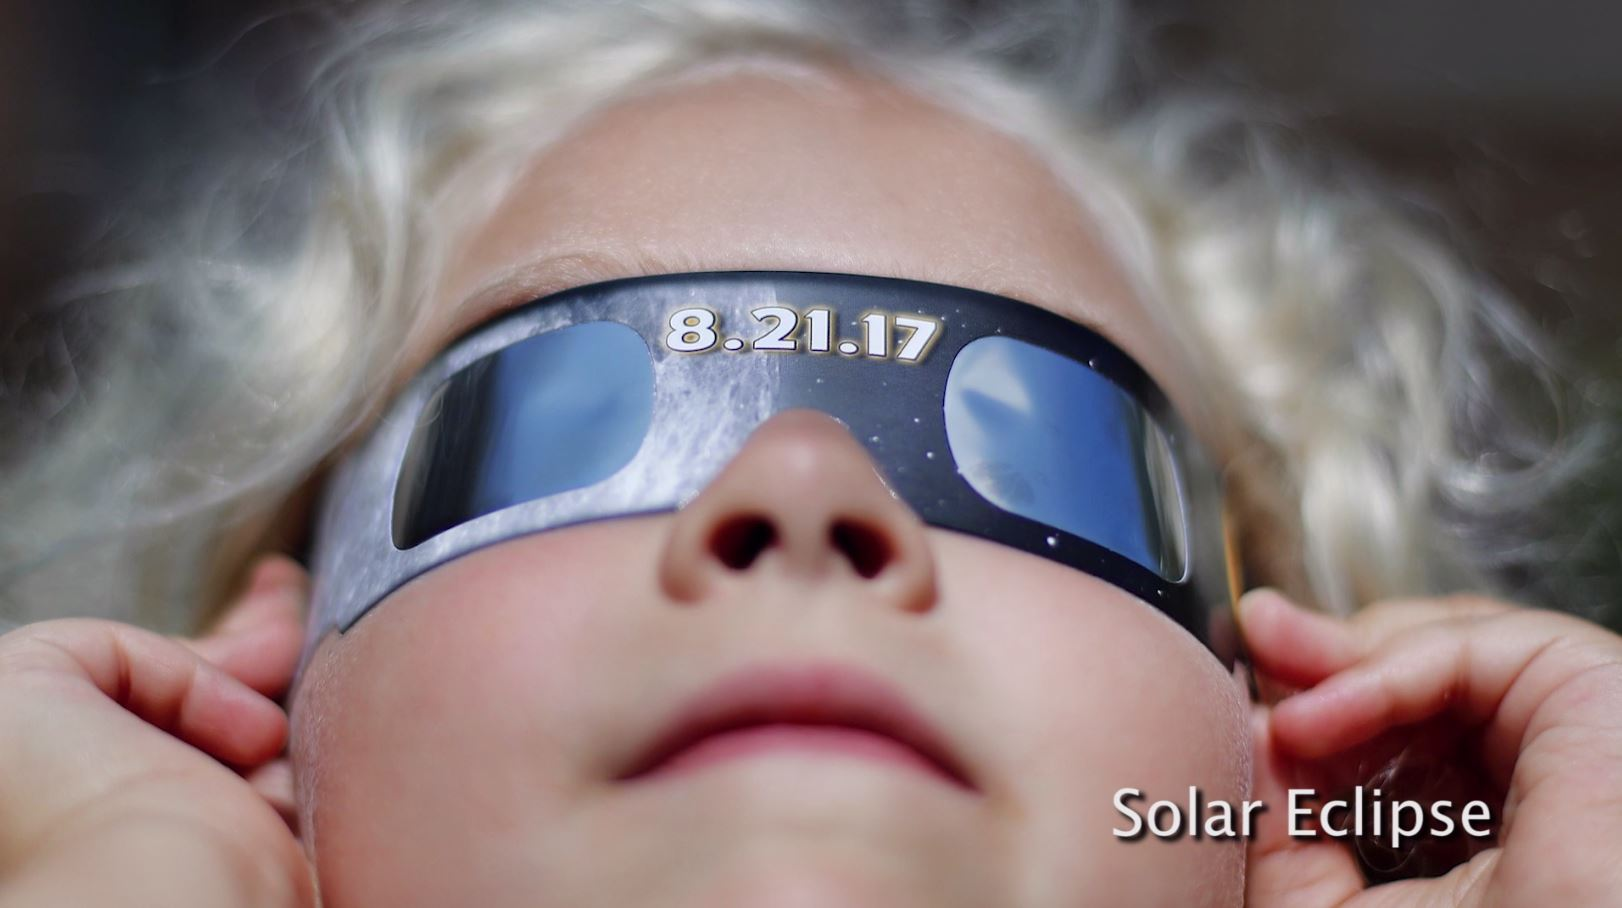 Zeitgeist and current events including sports trends and international events from the past 12 months since the last meeting including the solar eclipse